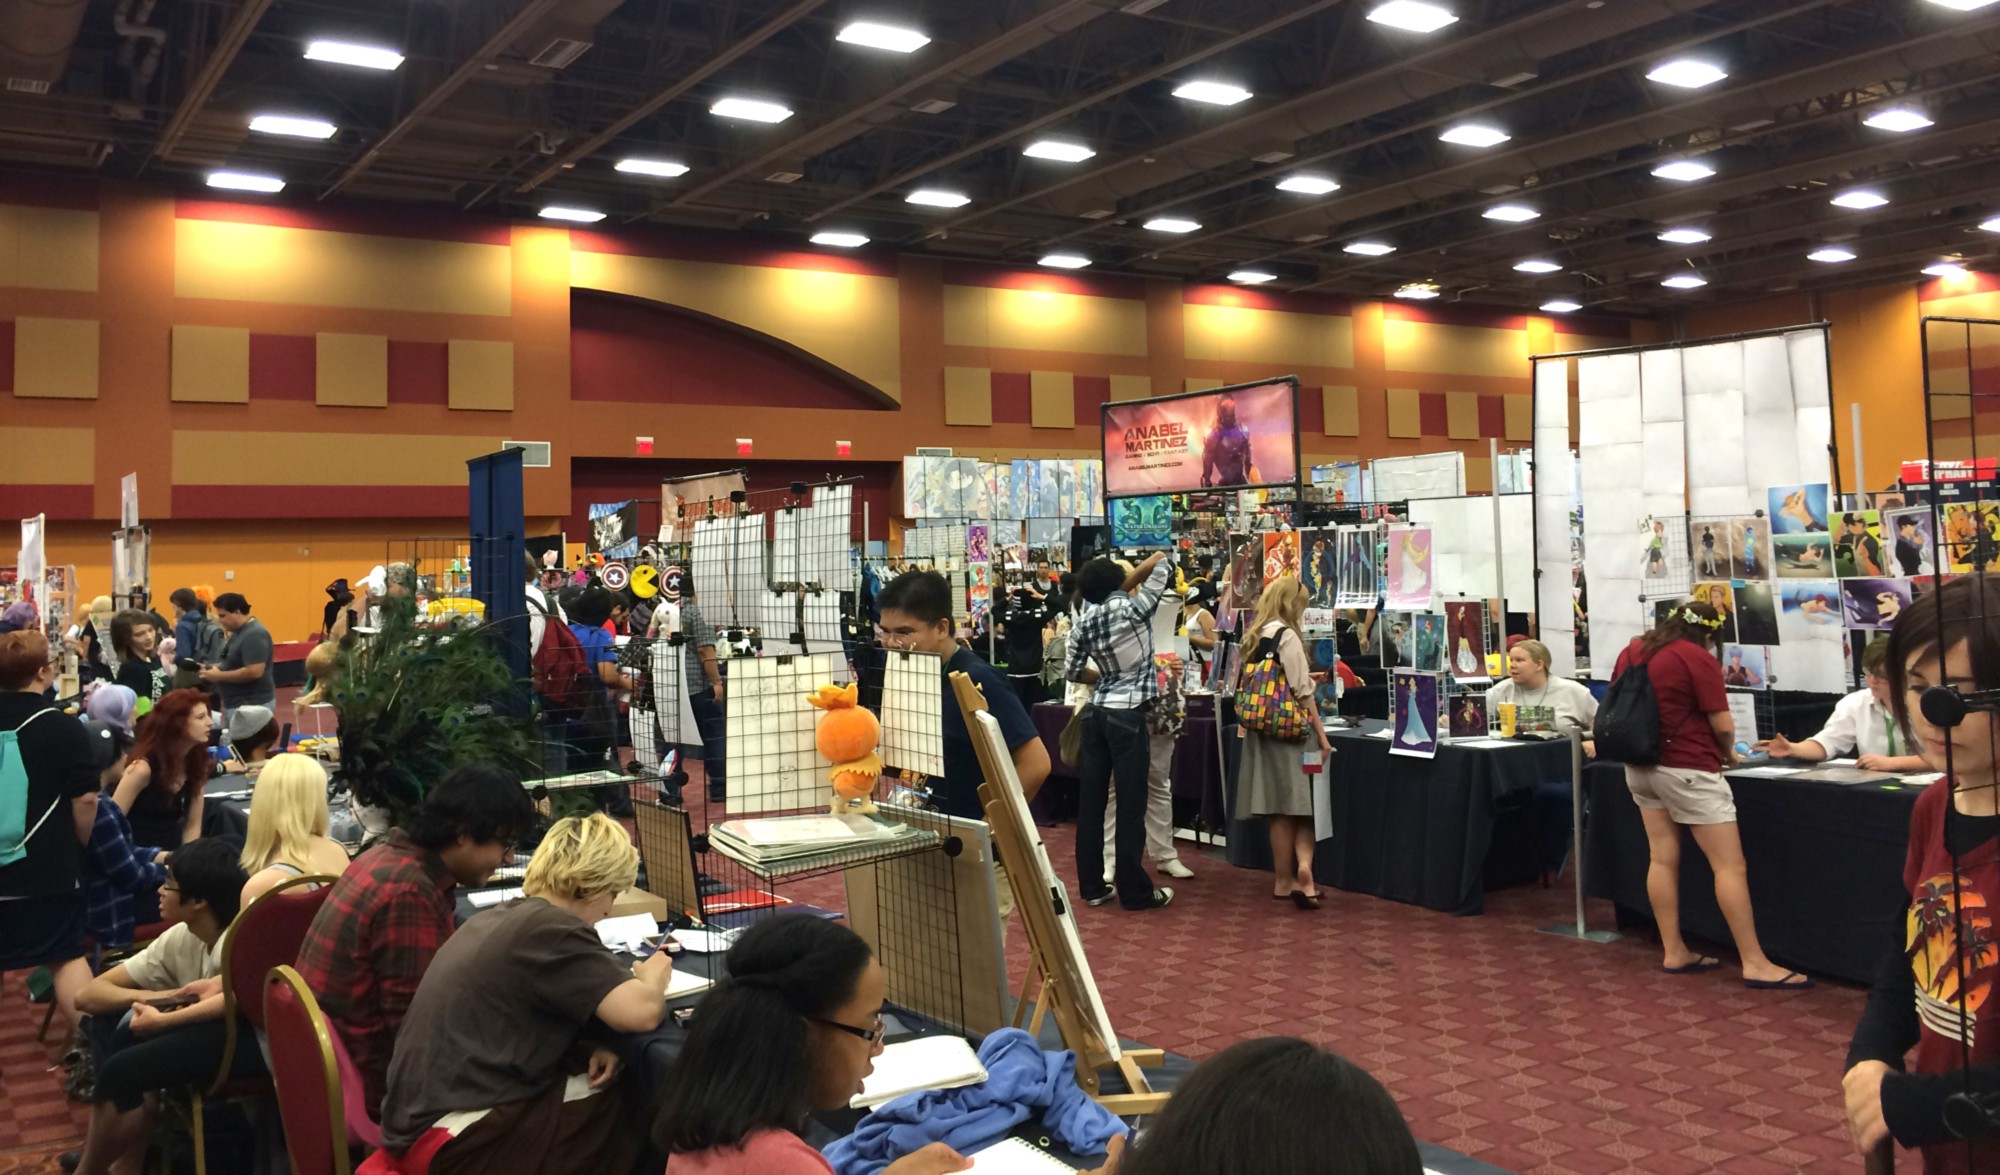 My view from Saboten Con 2014 at Artist Alley booths